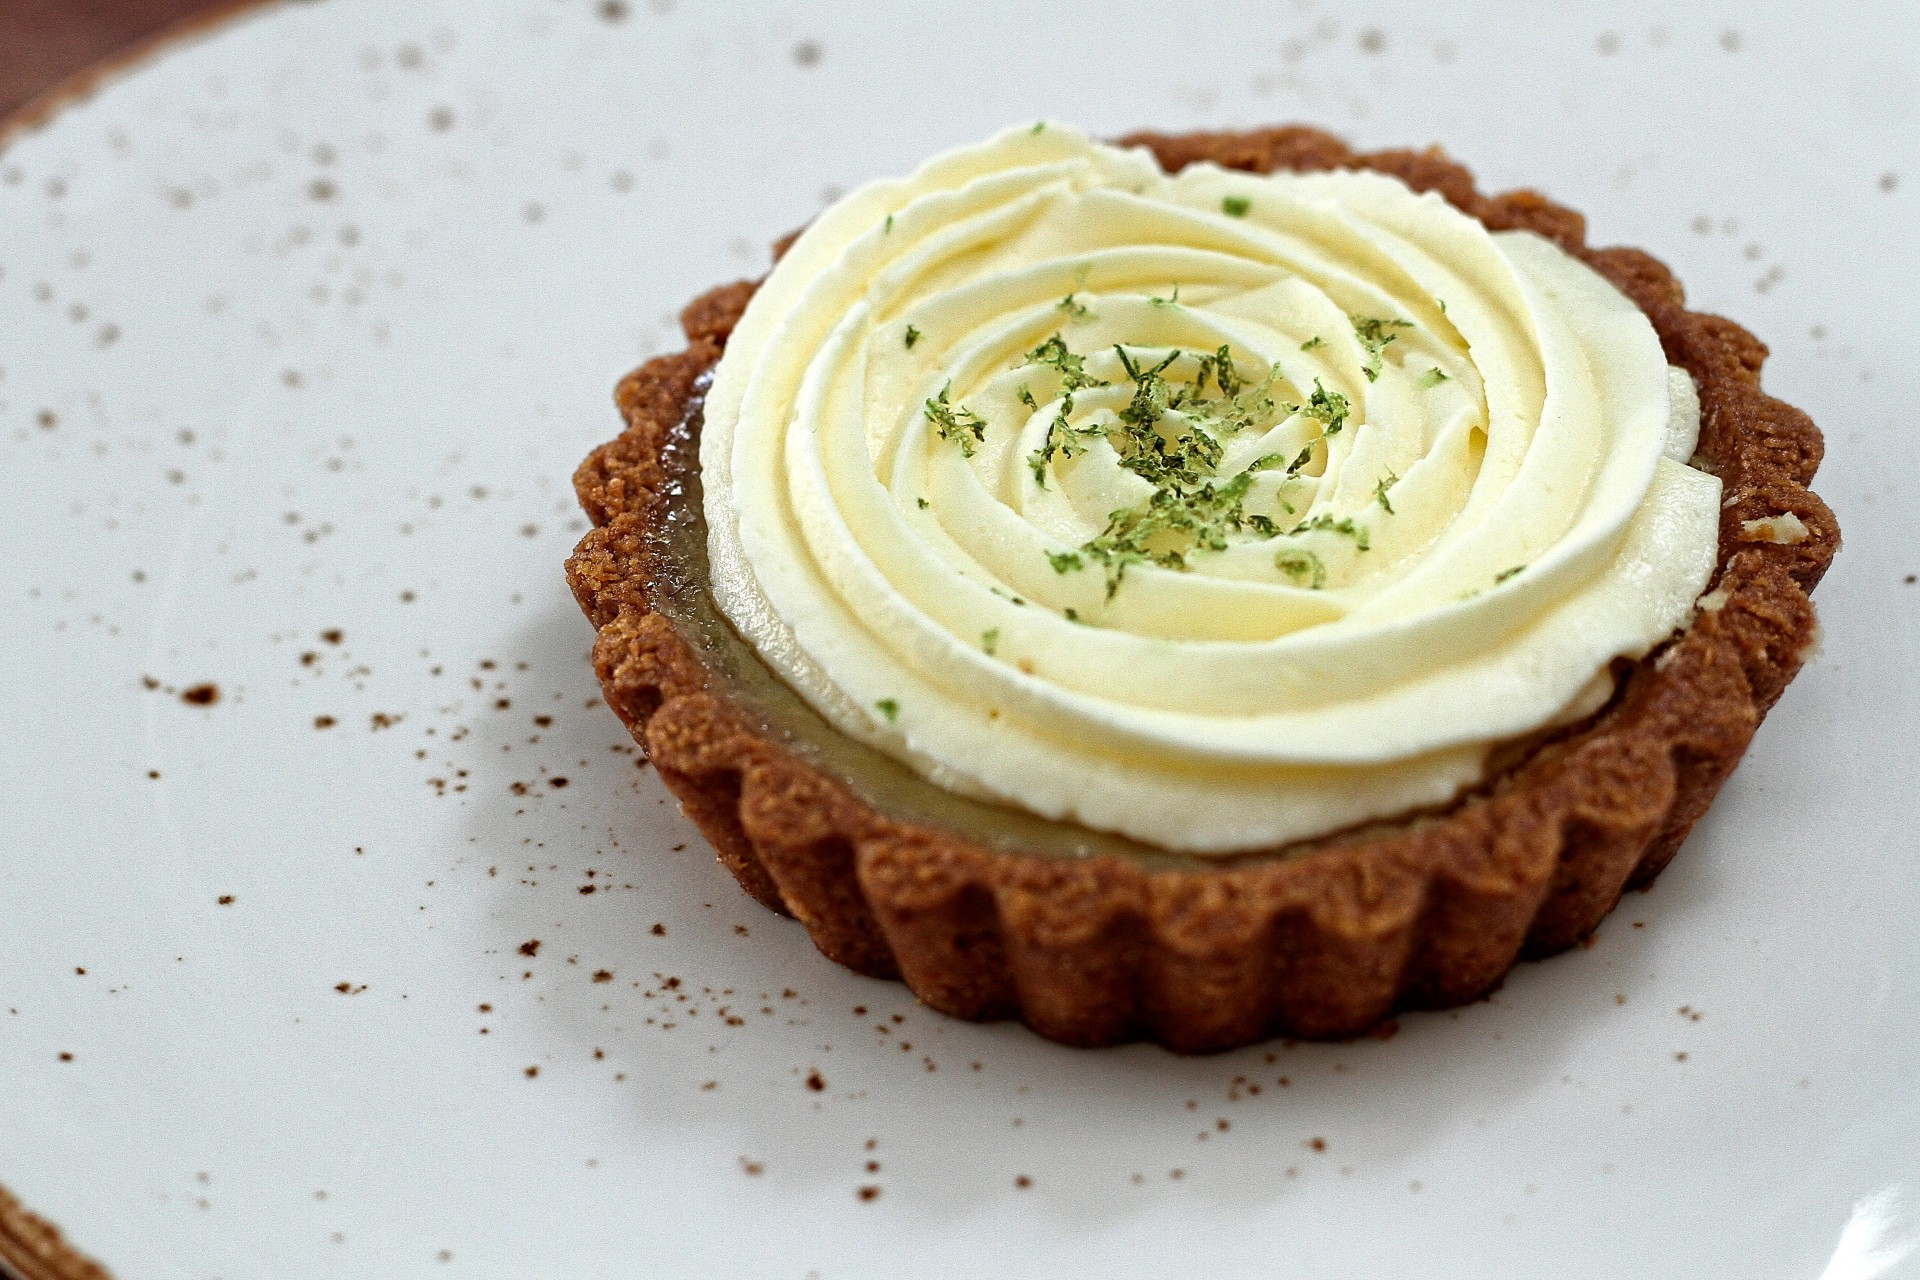 The key lime tart is a delightful, slightly astringent concoction that makes use of a  gluten-free pie crust.